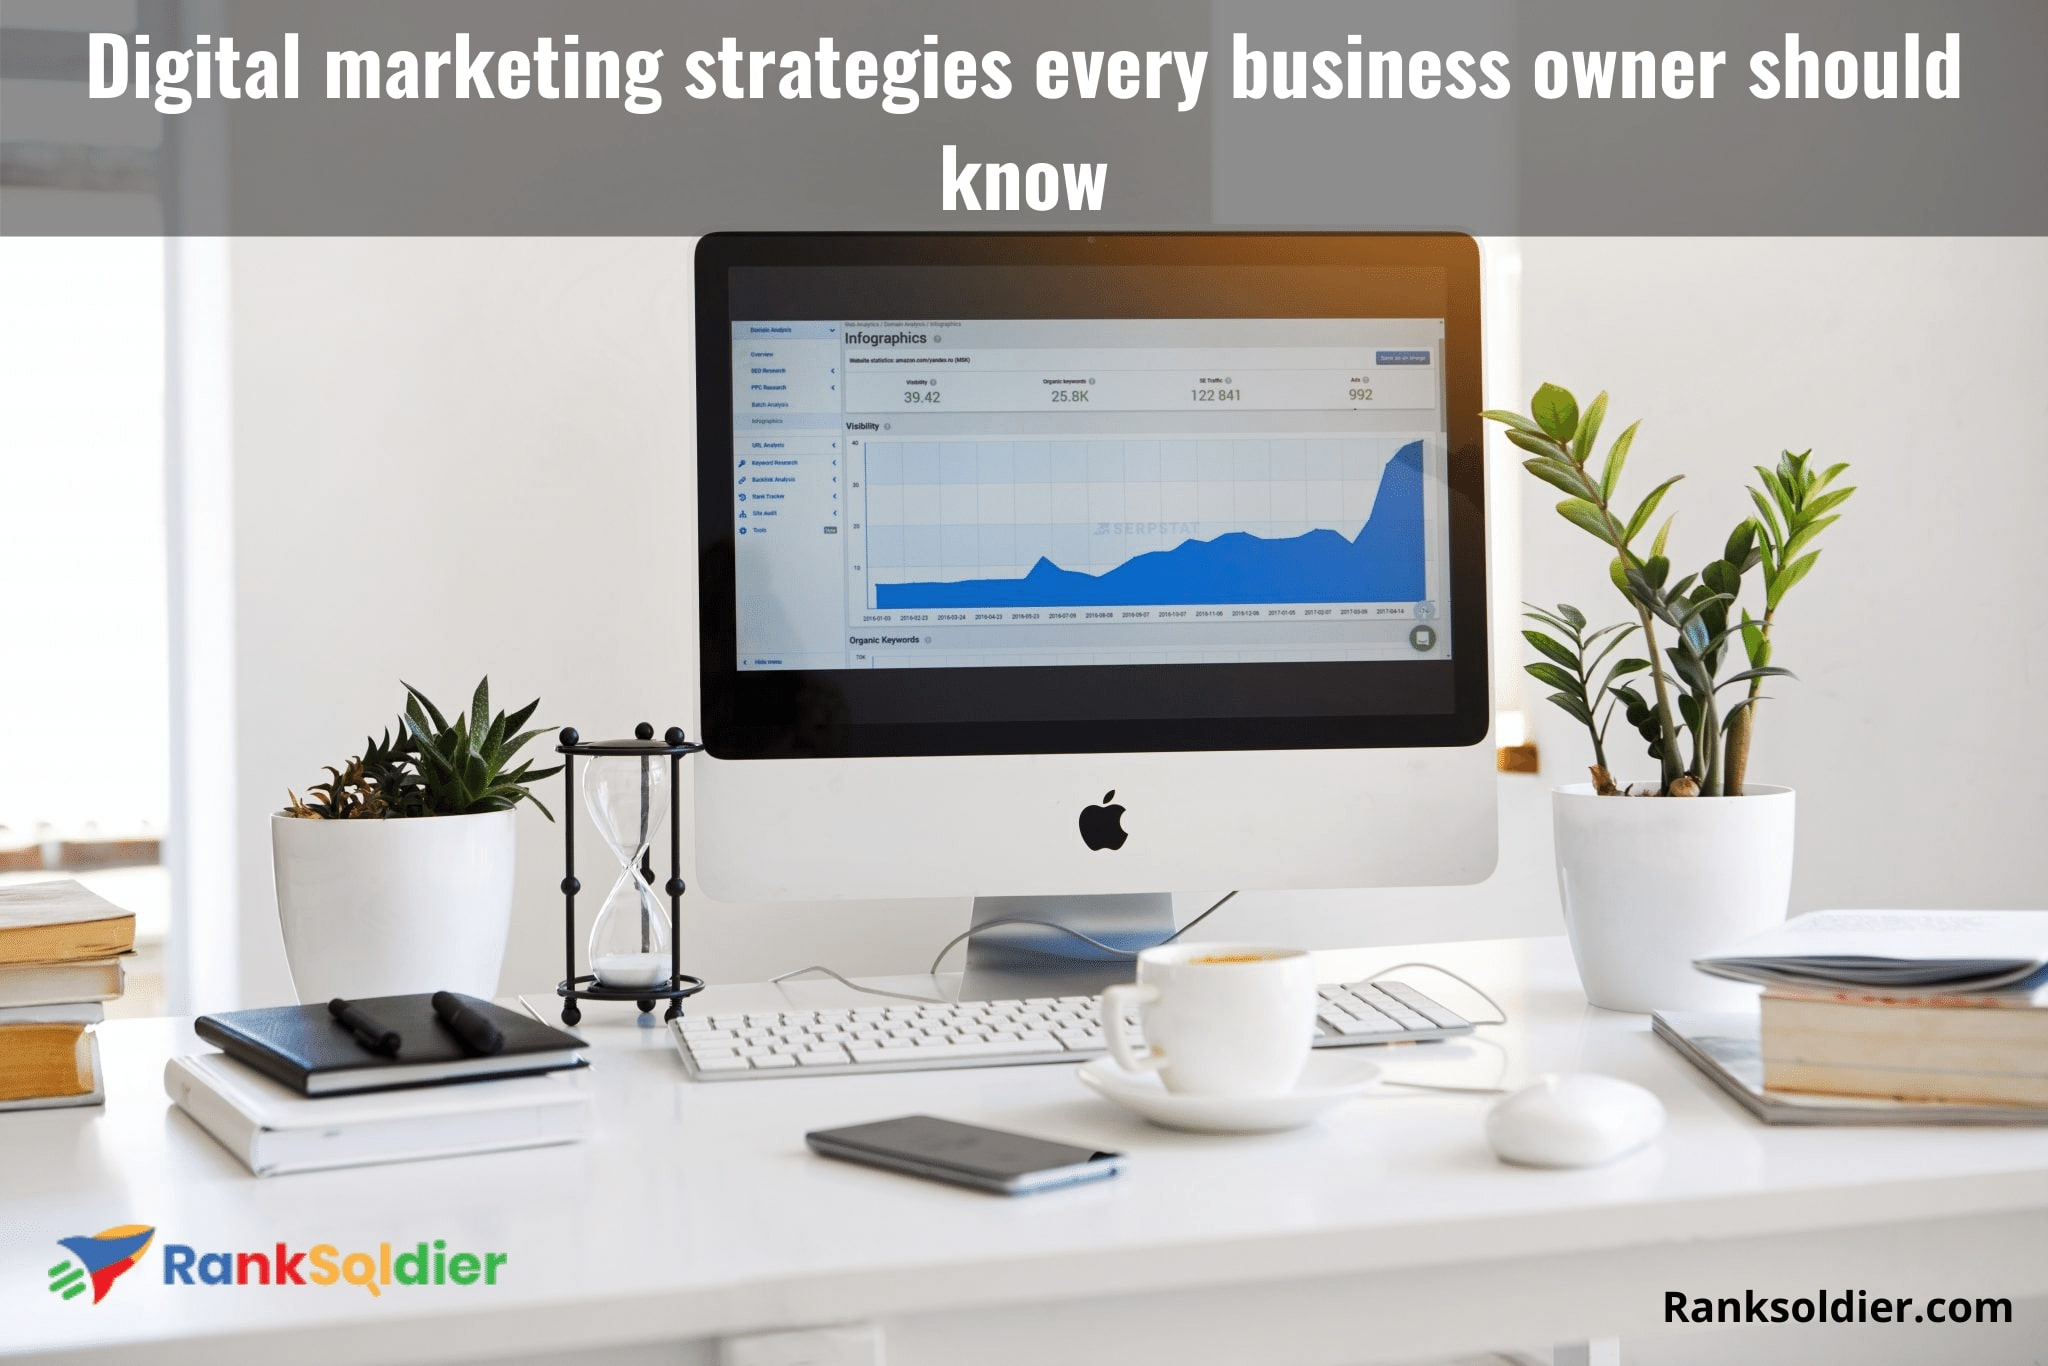 Digital marketing strategies every business owner should know